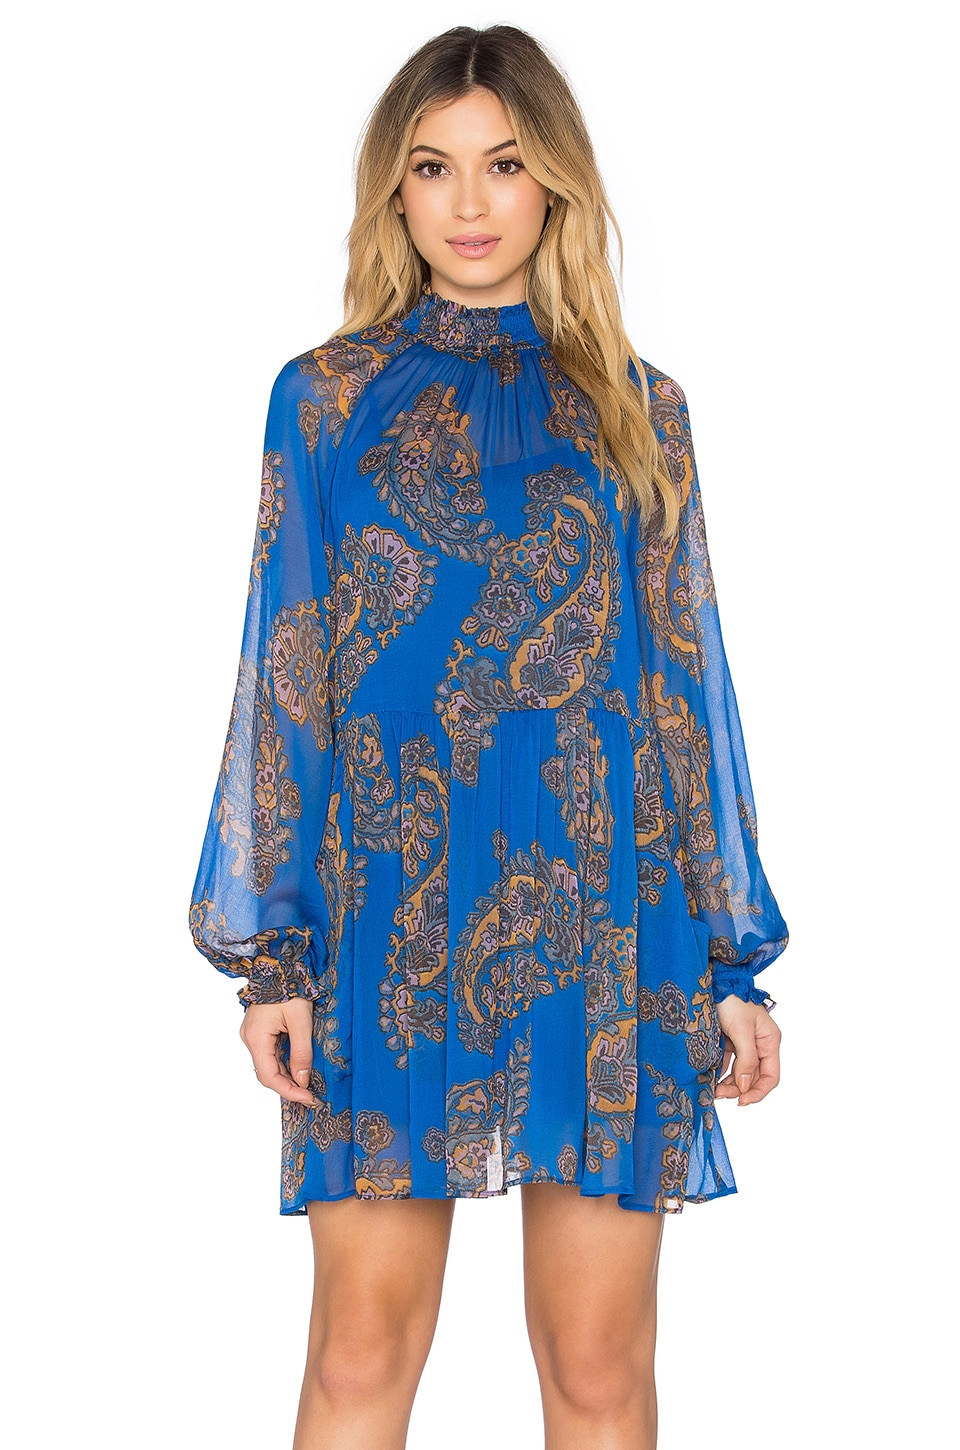 Free People Moonstruck Mini Dress in Cobalt Combo | REVOLVE